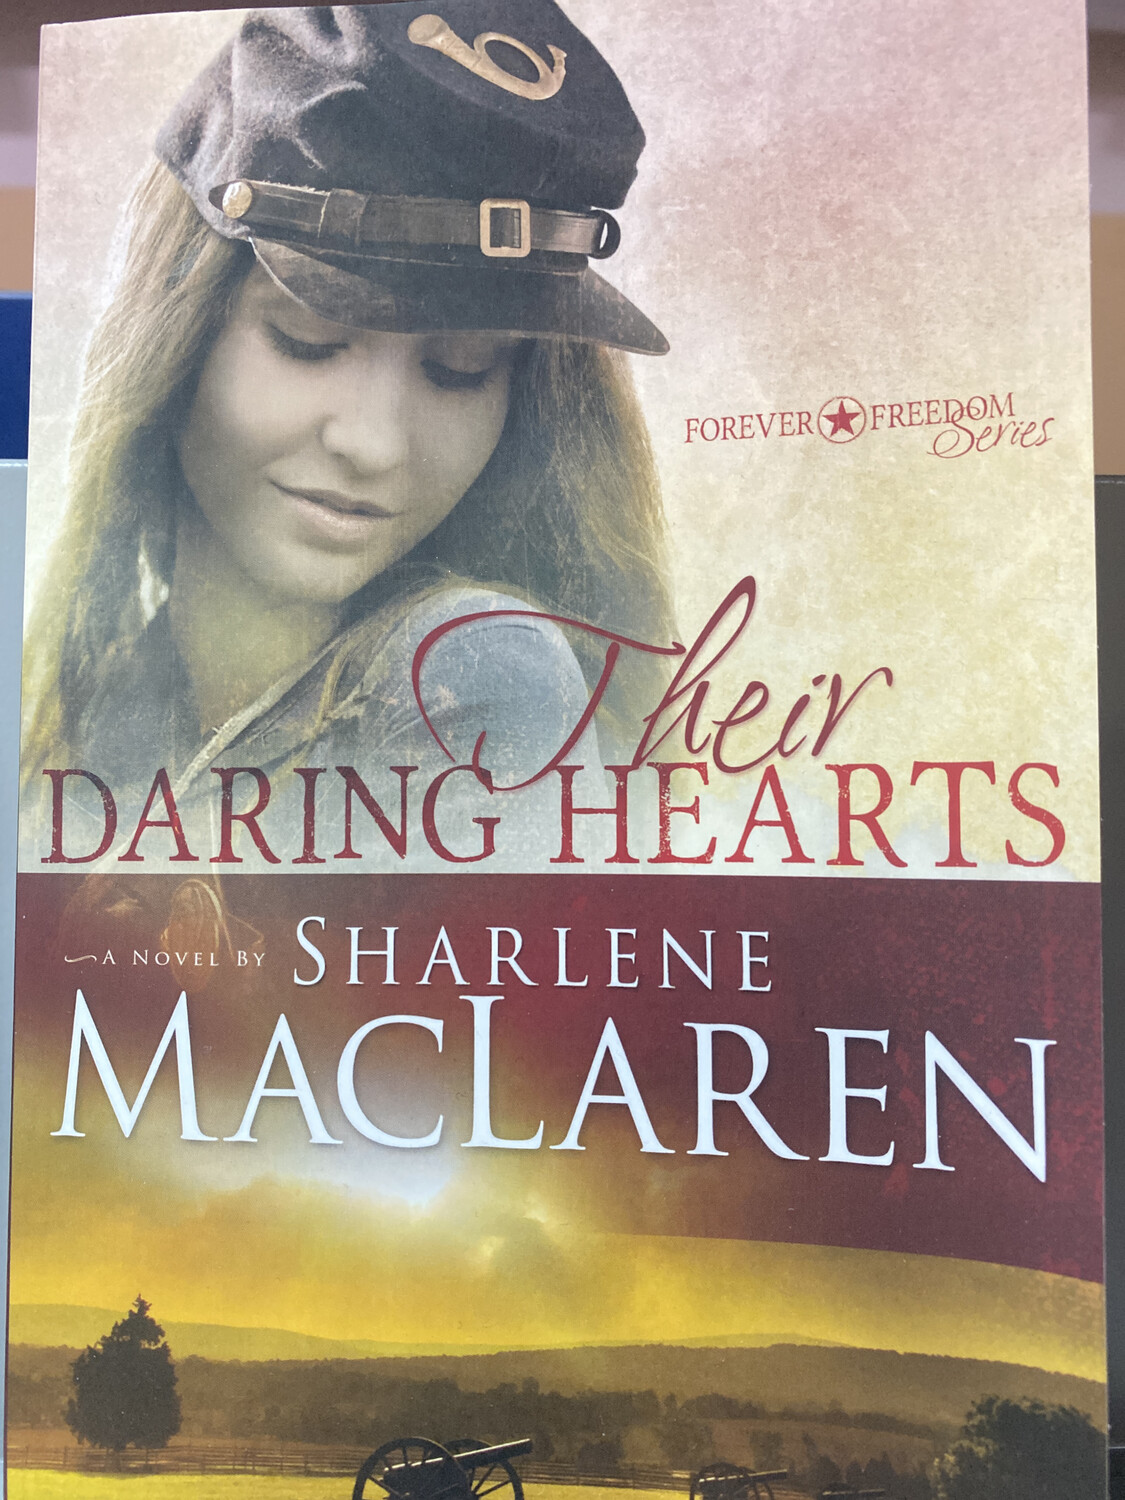 MACLAREN, Their Daring Hearts